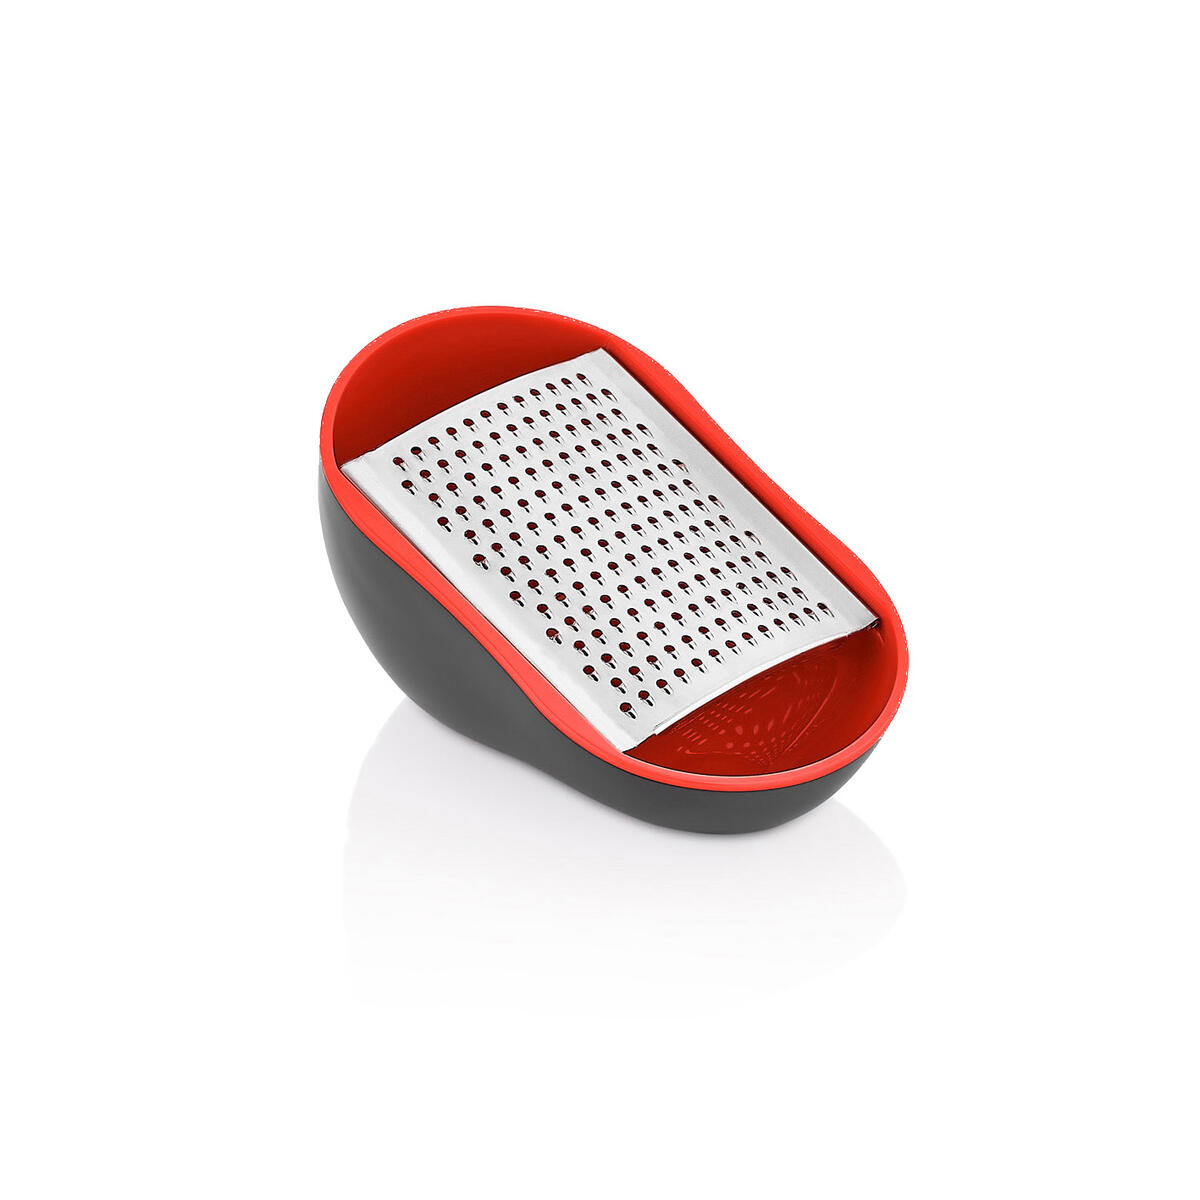 Qlux stylish practical kitchen and cheese grater - vegetable, carrot, ginger, garlic grater - non-slip base - decorative design - stainless blades - Easy to clean - BPA free red